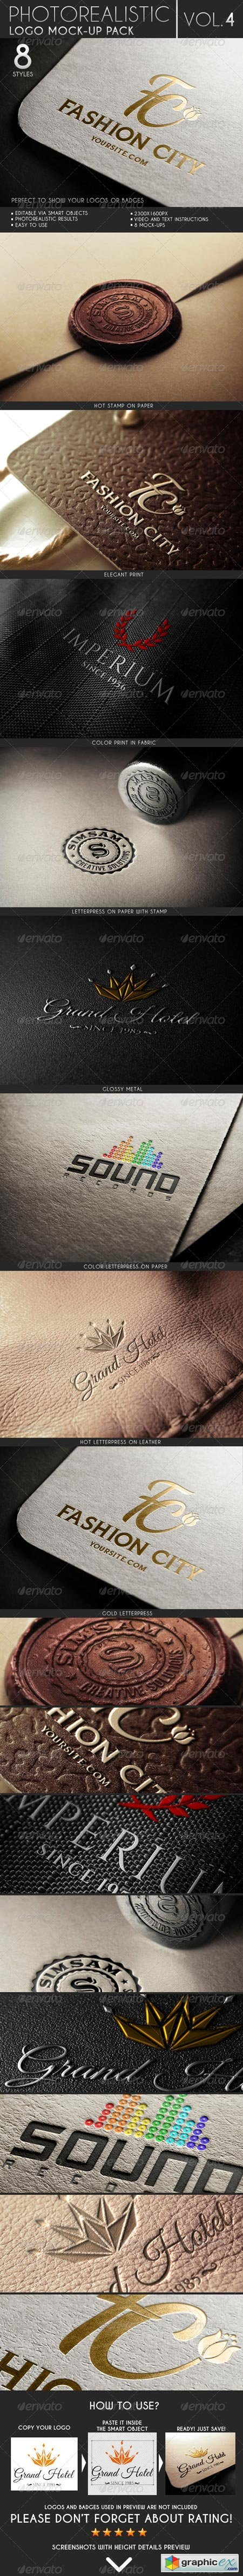 Photorealistic Logo Mock-Up Pack Vol.4 6879129